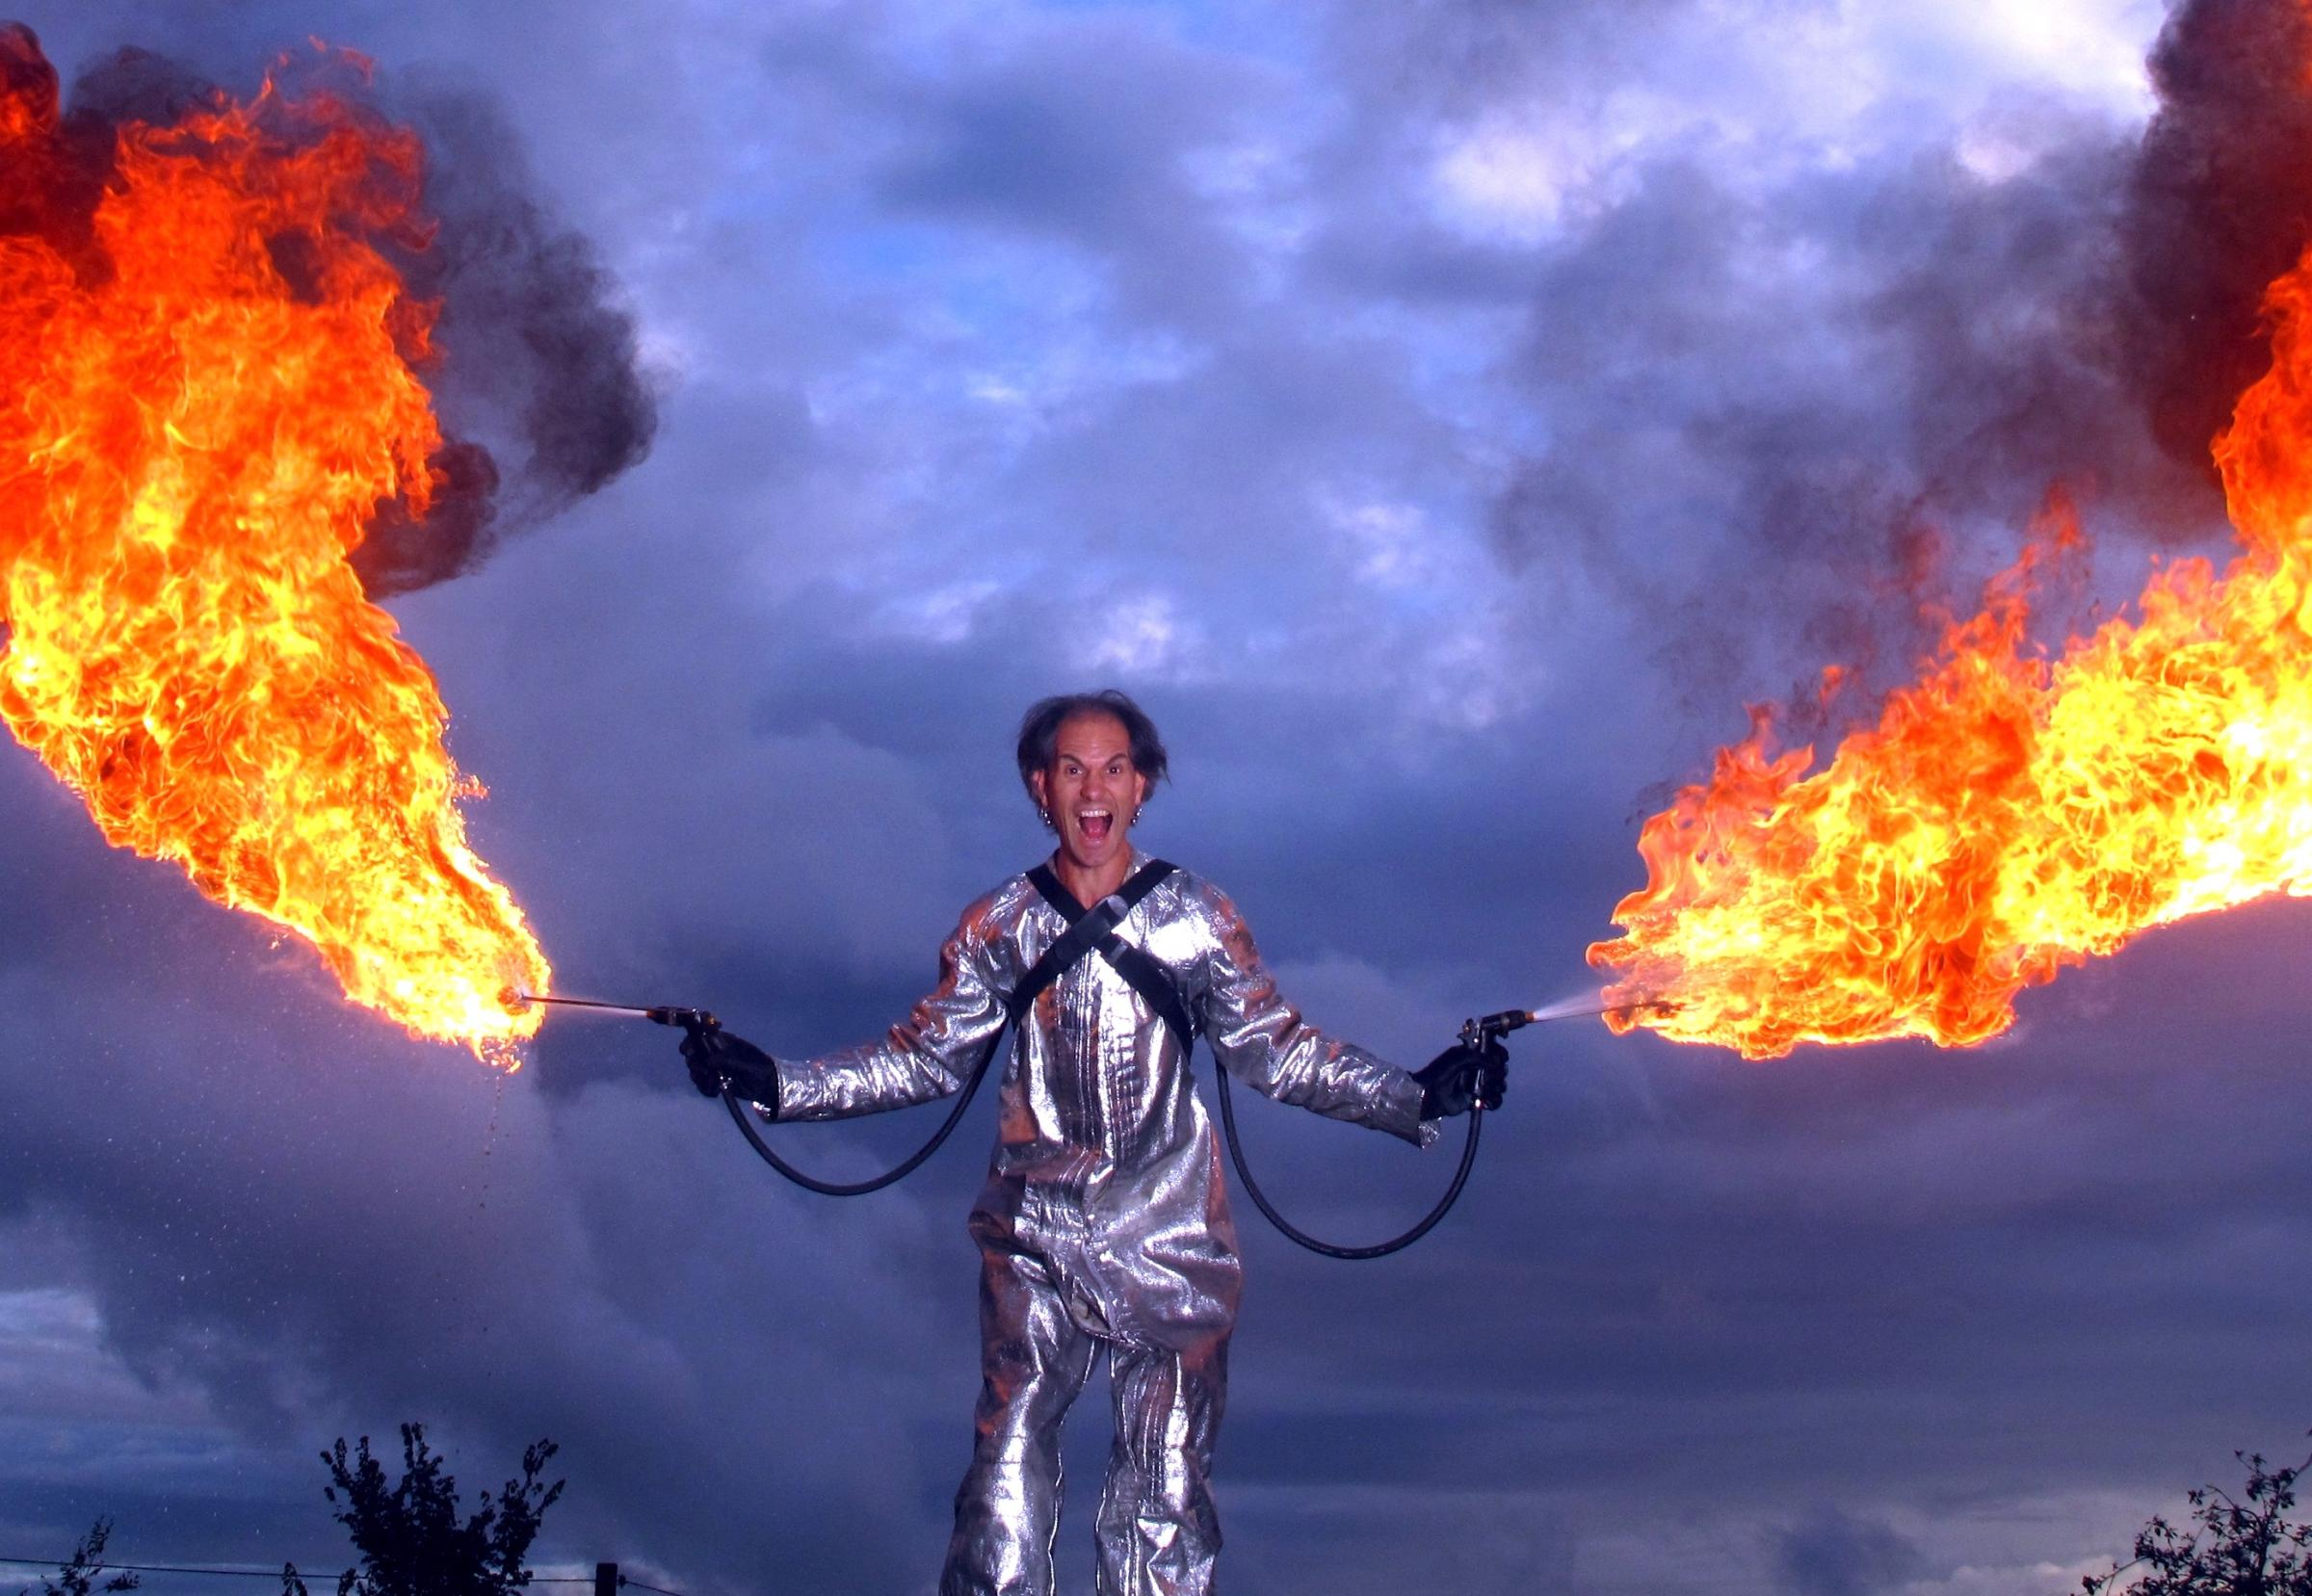 Joseph Peace performing in his Fire Stunt Spectacular